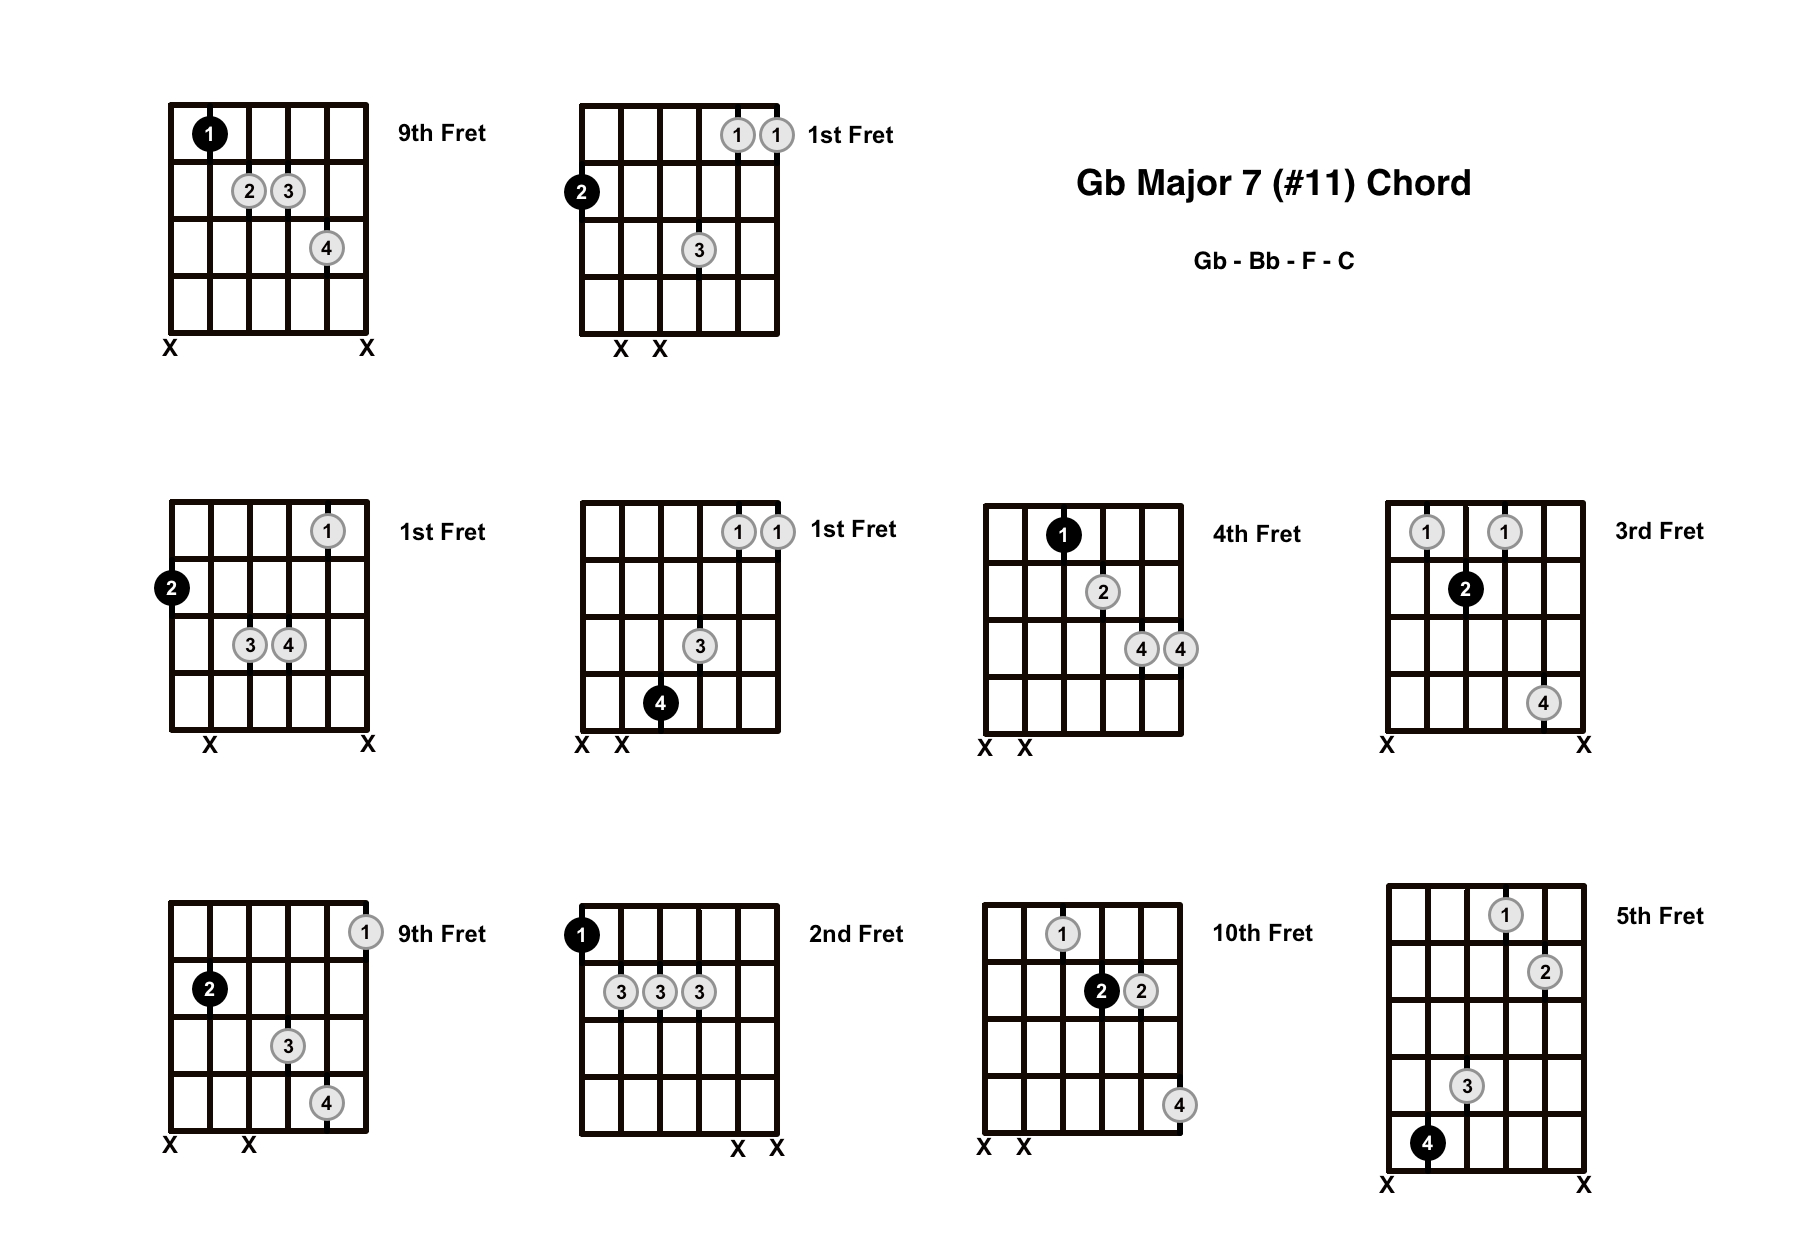 Gbmaj7#11 Chord On The Guitar (G Flat Major 7 #11) – Diagrams, Finger Positions and Theory